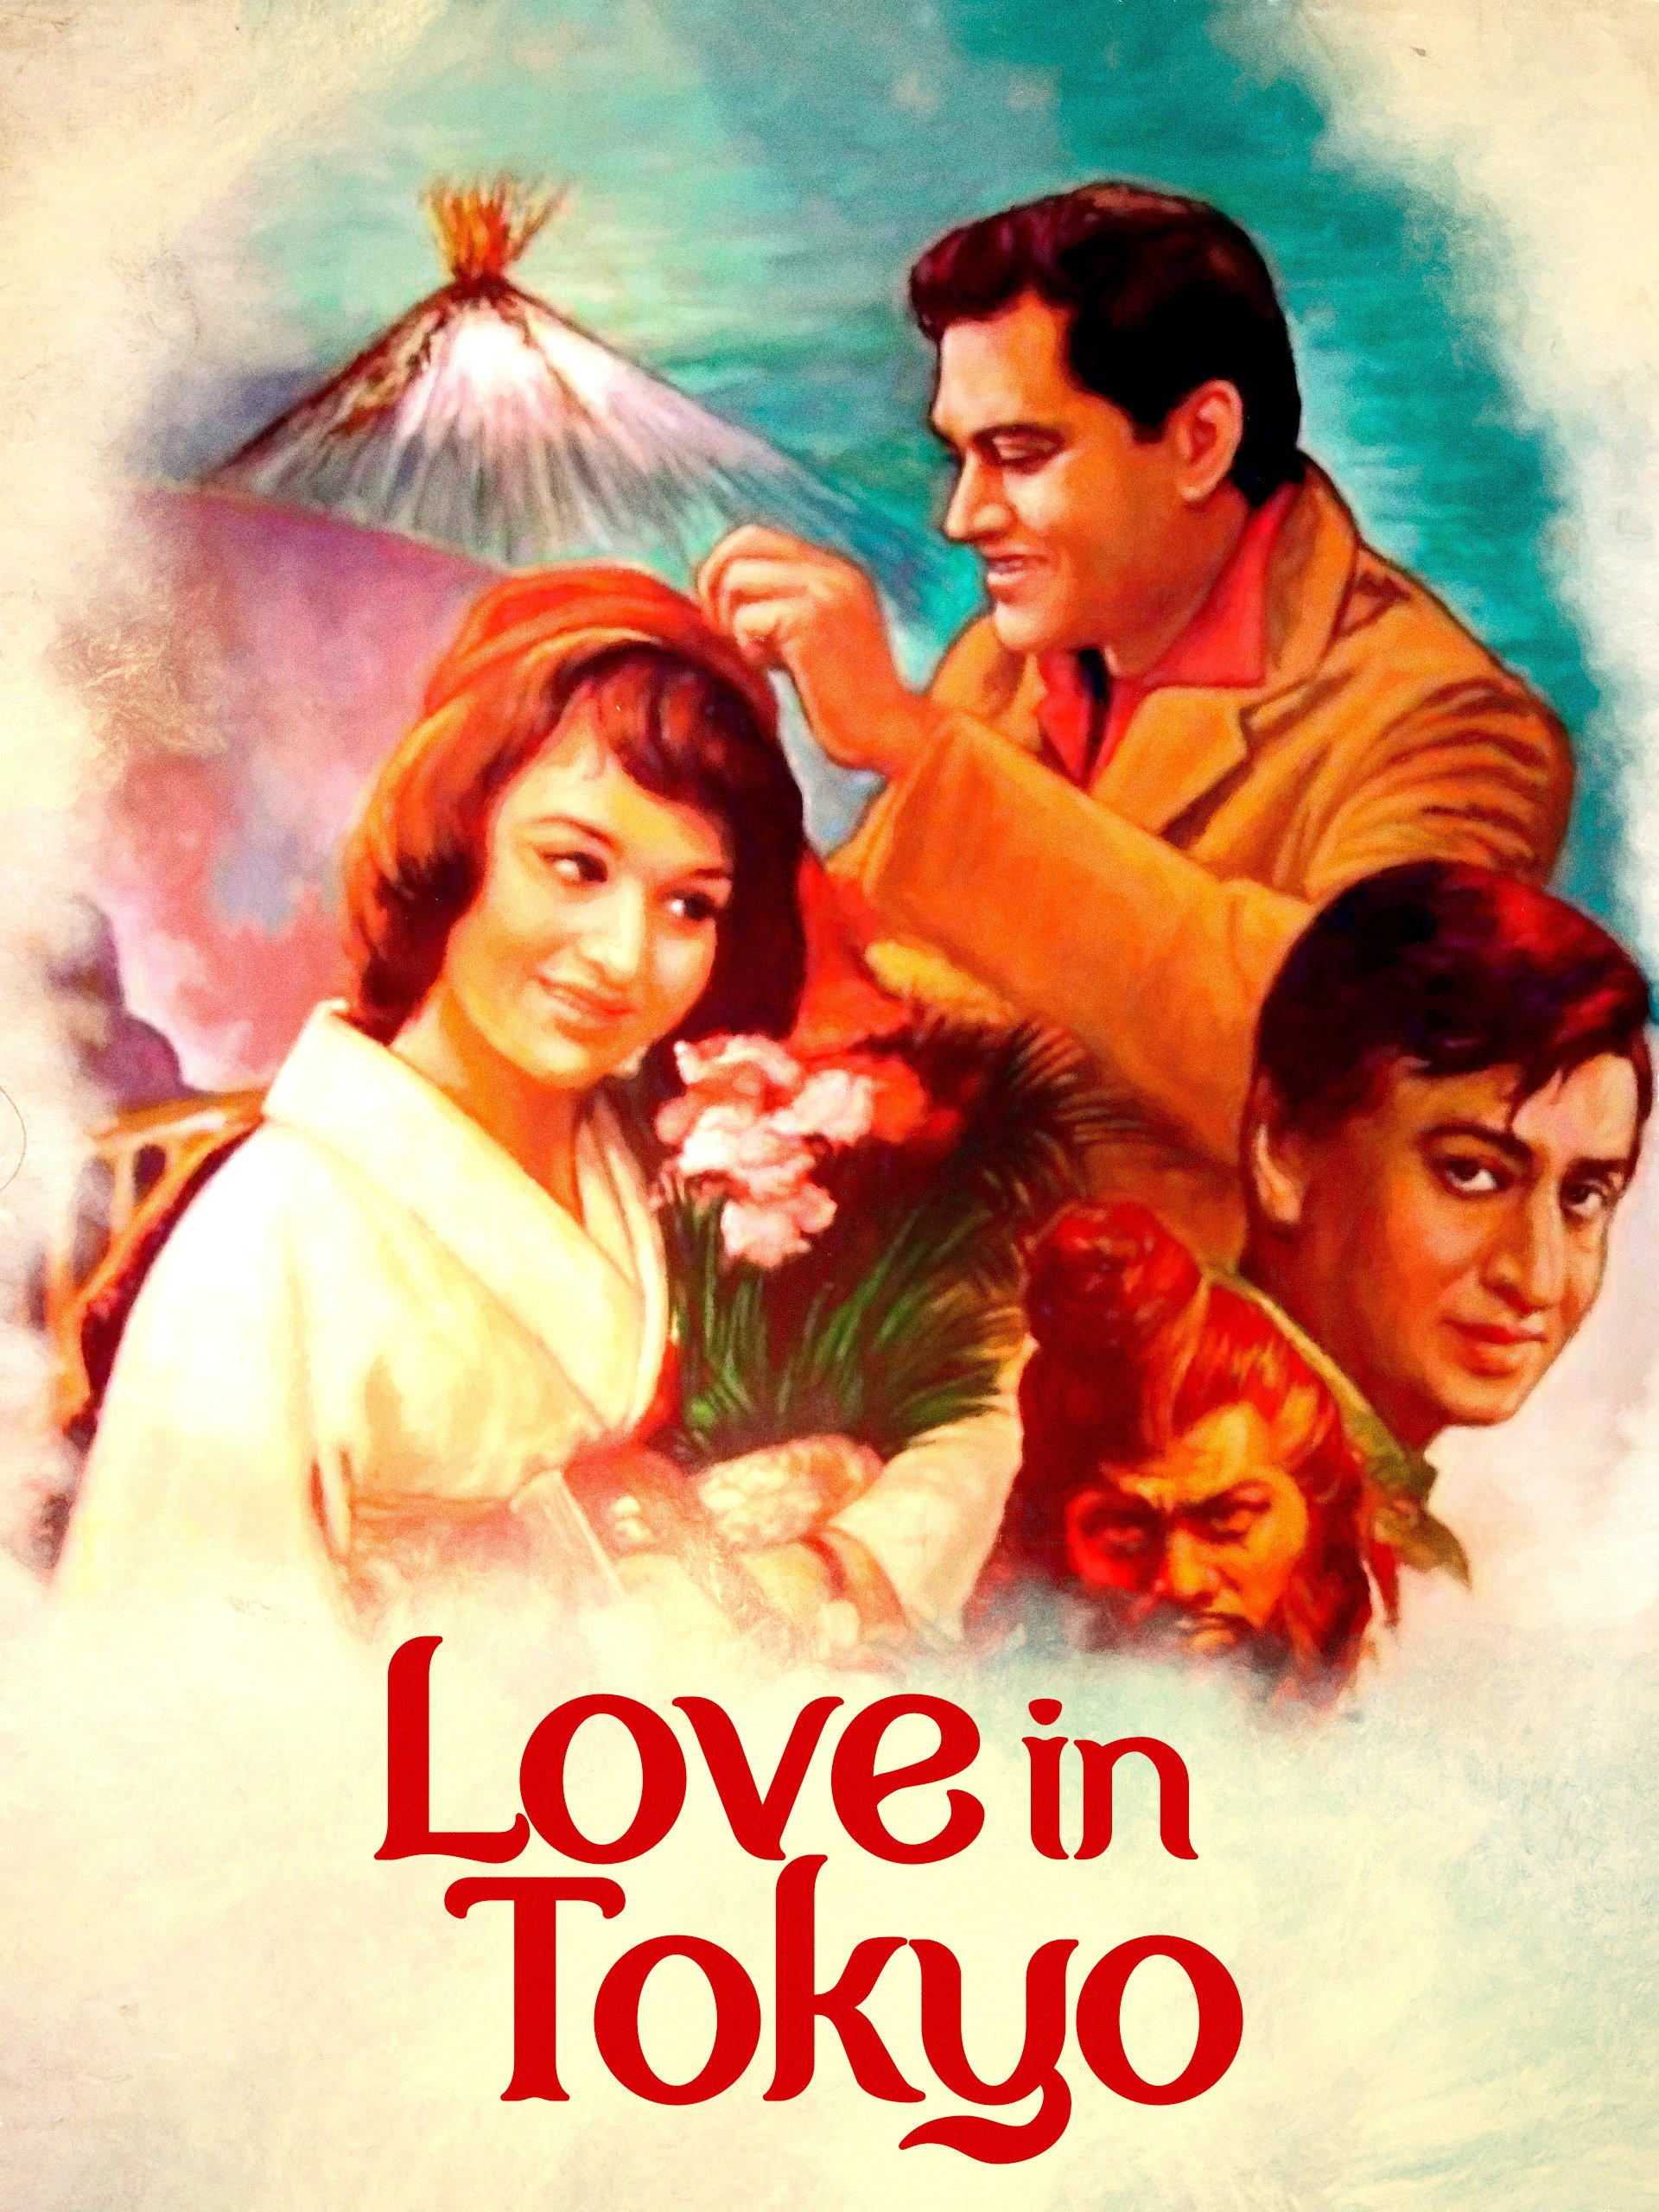 love in tokyo old hindi movie songs free download